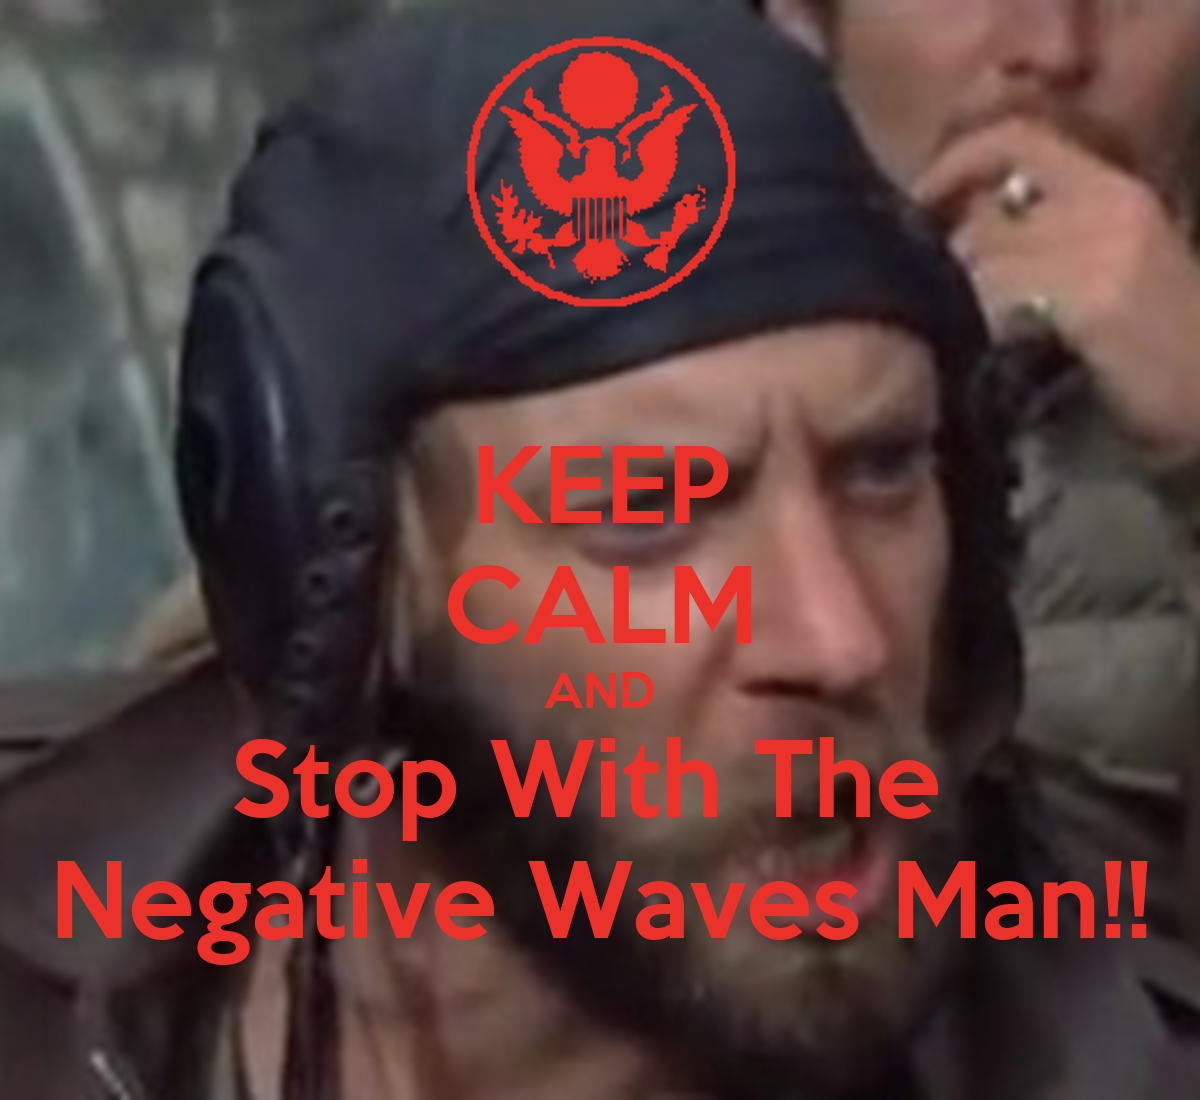 keep-calm-and-stop-with-the-negative-wav